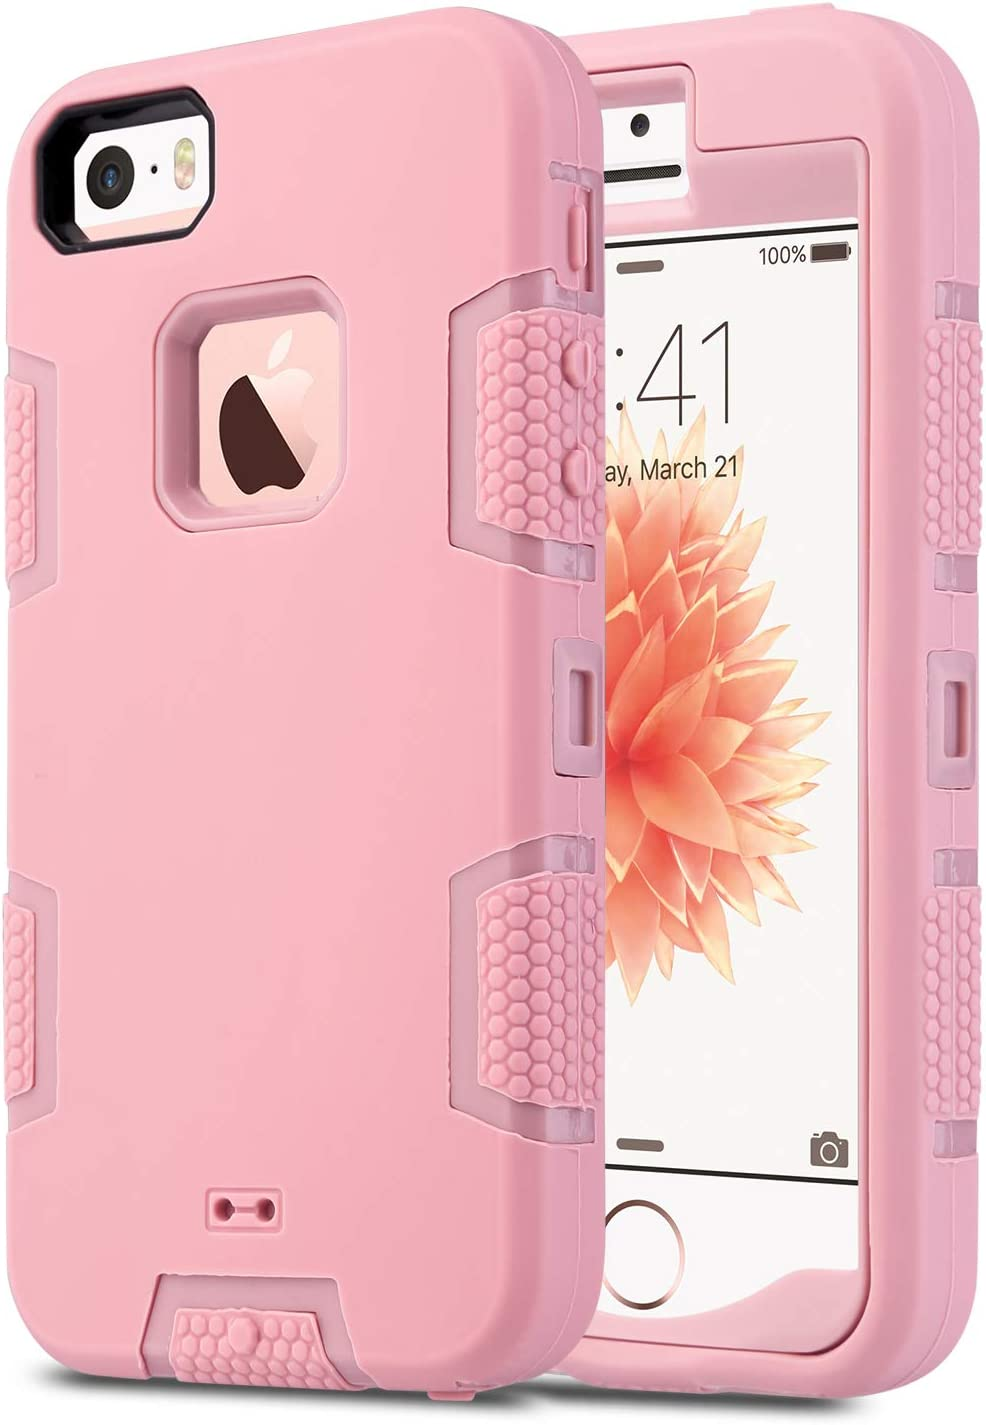 ULAK iPhone 5S Case, iPhone 5 Case,iPhone SE Case, Knox Armor Heavy Duty Shockproof Sport Rugged Drop Resistant Dustproof Protective Cover for Apple iPhone 5 5S SE -Rose Gold(Not fit iPhone SE 2020)